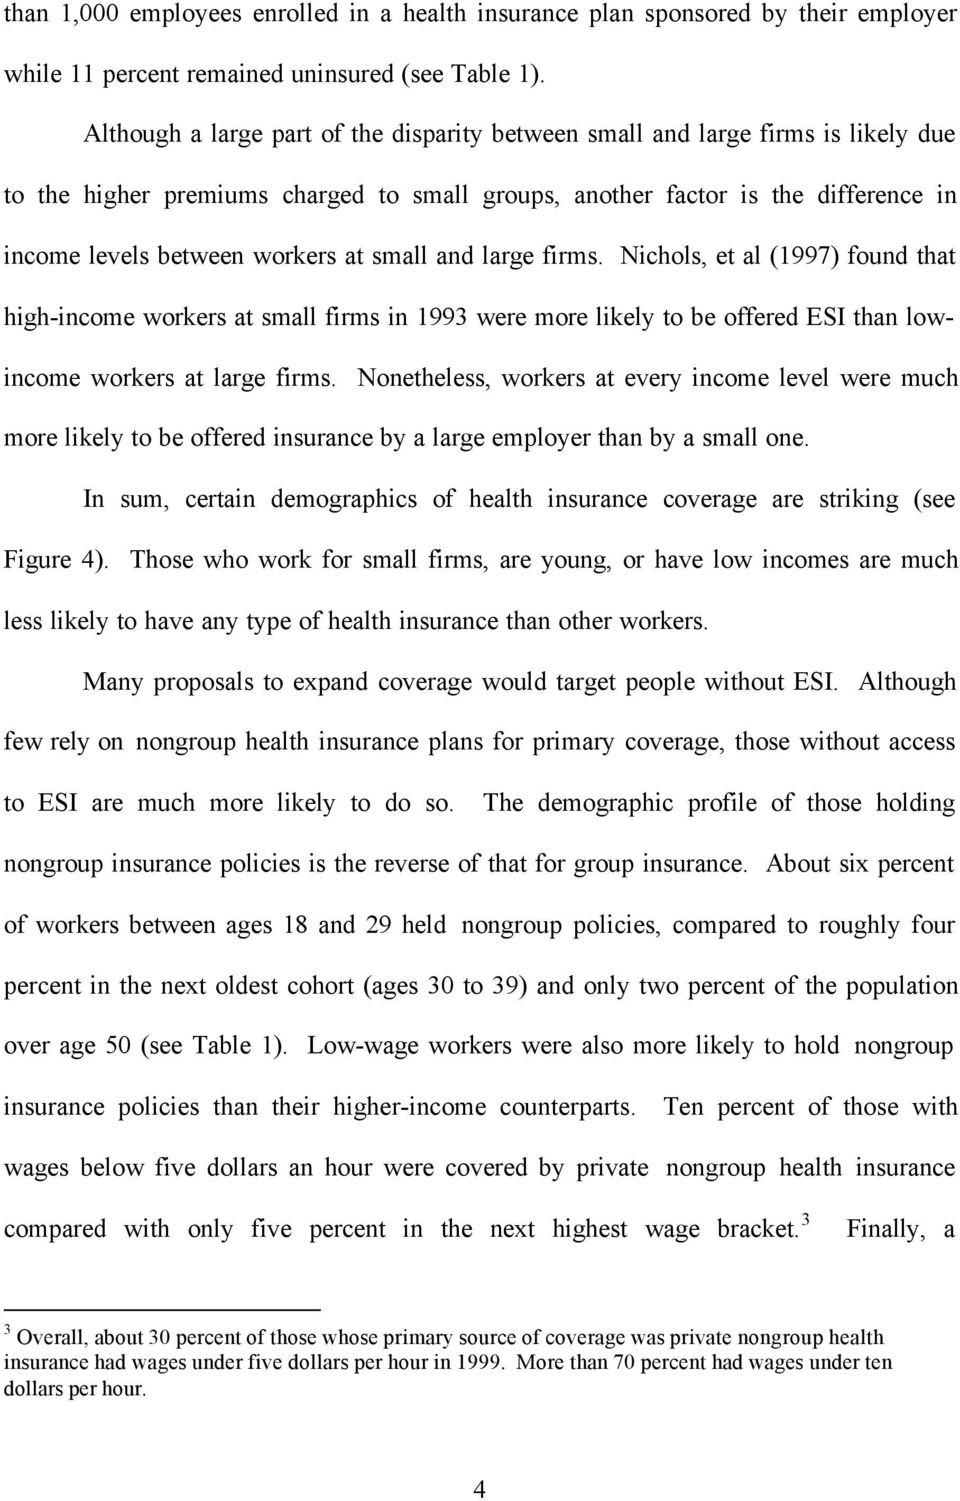 small and large firms. Nichols, et al (1997) found that high-income workers at small firms in 1993 were more likely to be offered ESI than lowincome workers at large firms.